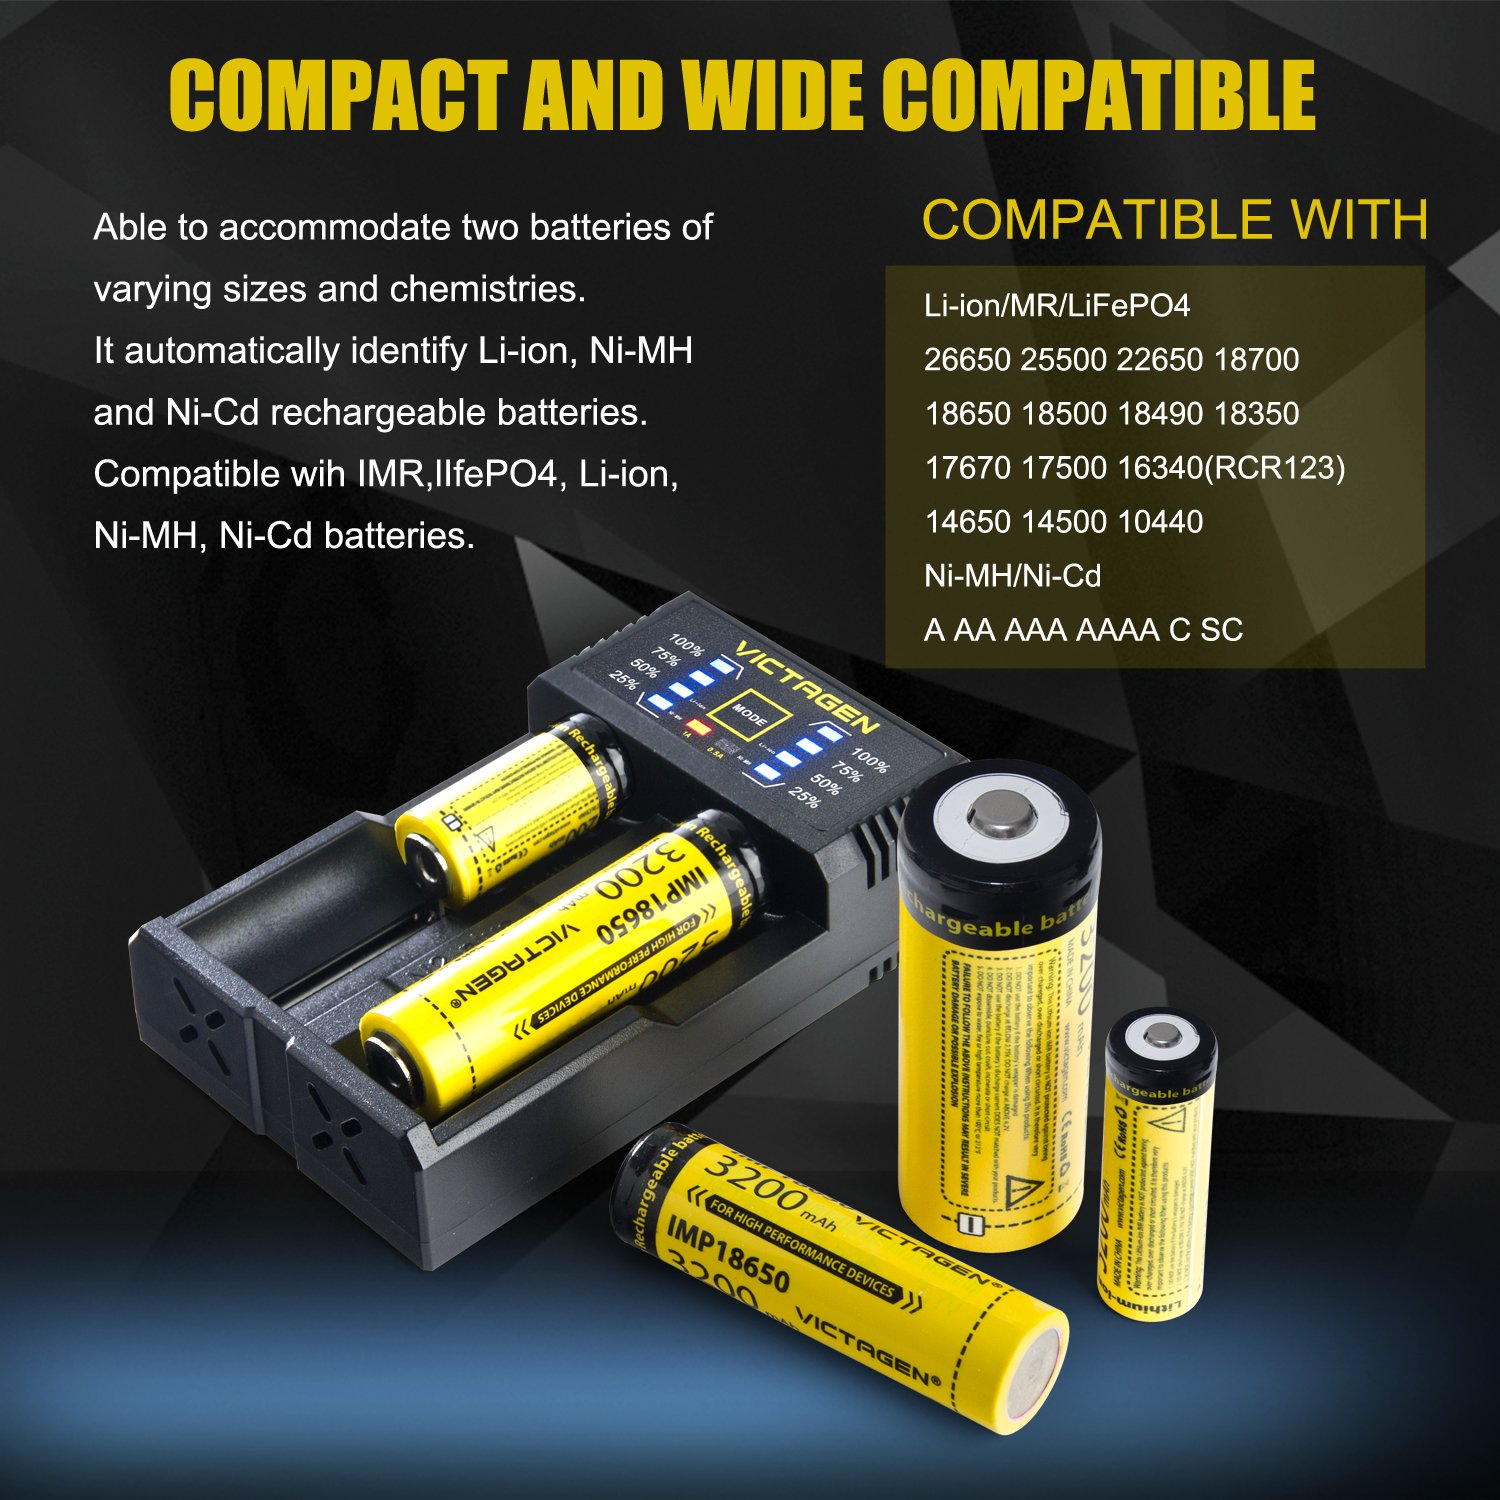 Victagen 18650 Lithium Battery (2 Packs) and Battery Charger, Universal Smart Charger For Rechargeable Batteries Li-ion 26650 18650/IMR/LiFePO4/Ni-MH/Ni-Cd 22650 18490 18350 17670 17500 16340 AA AAA C by Victagen (Image #4)